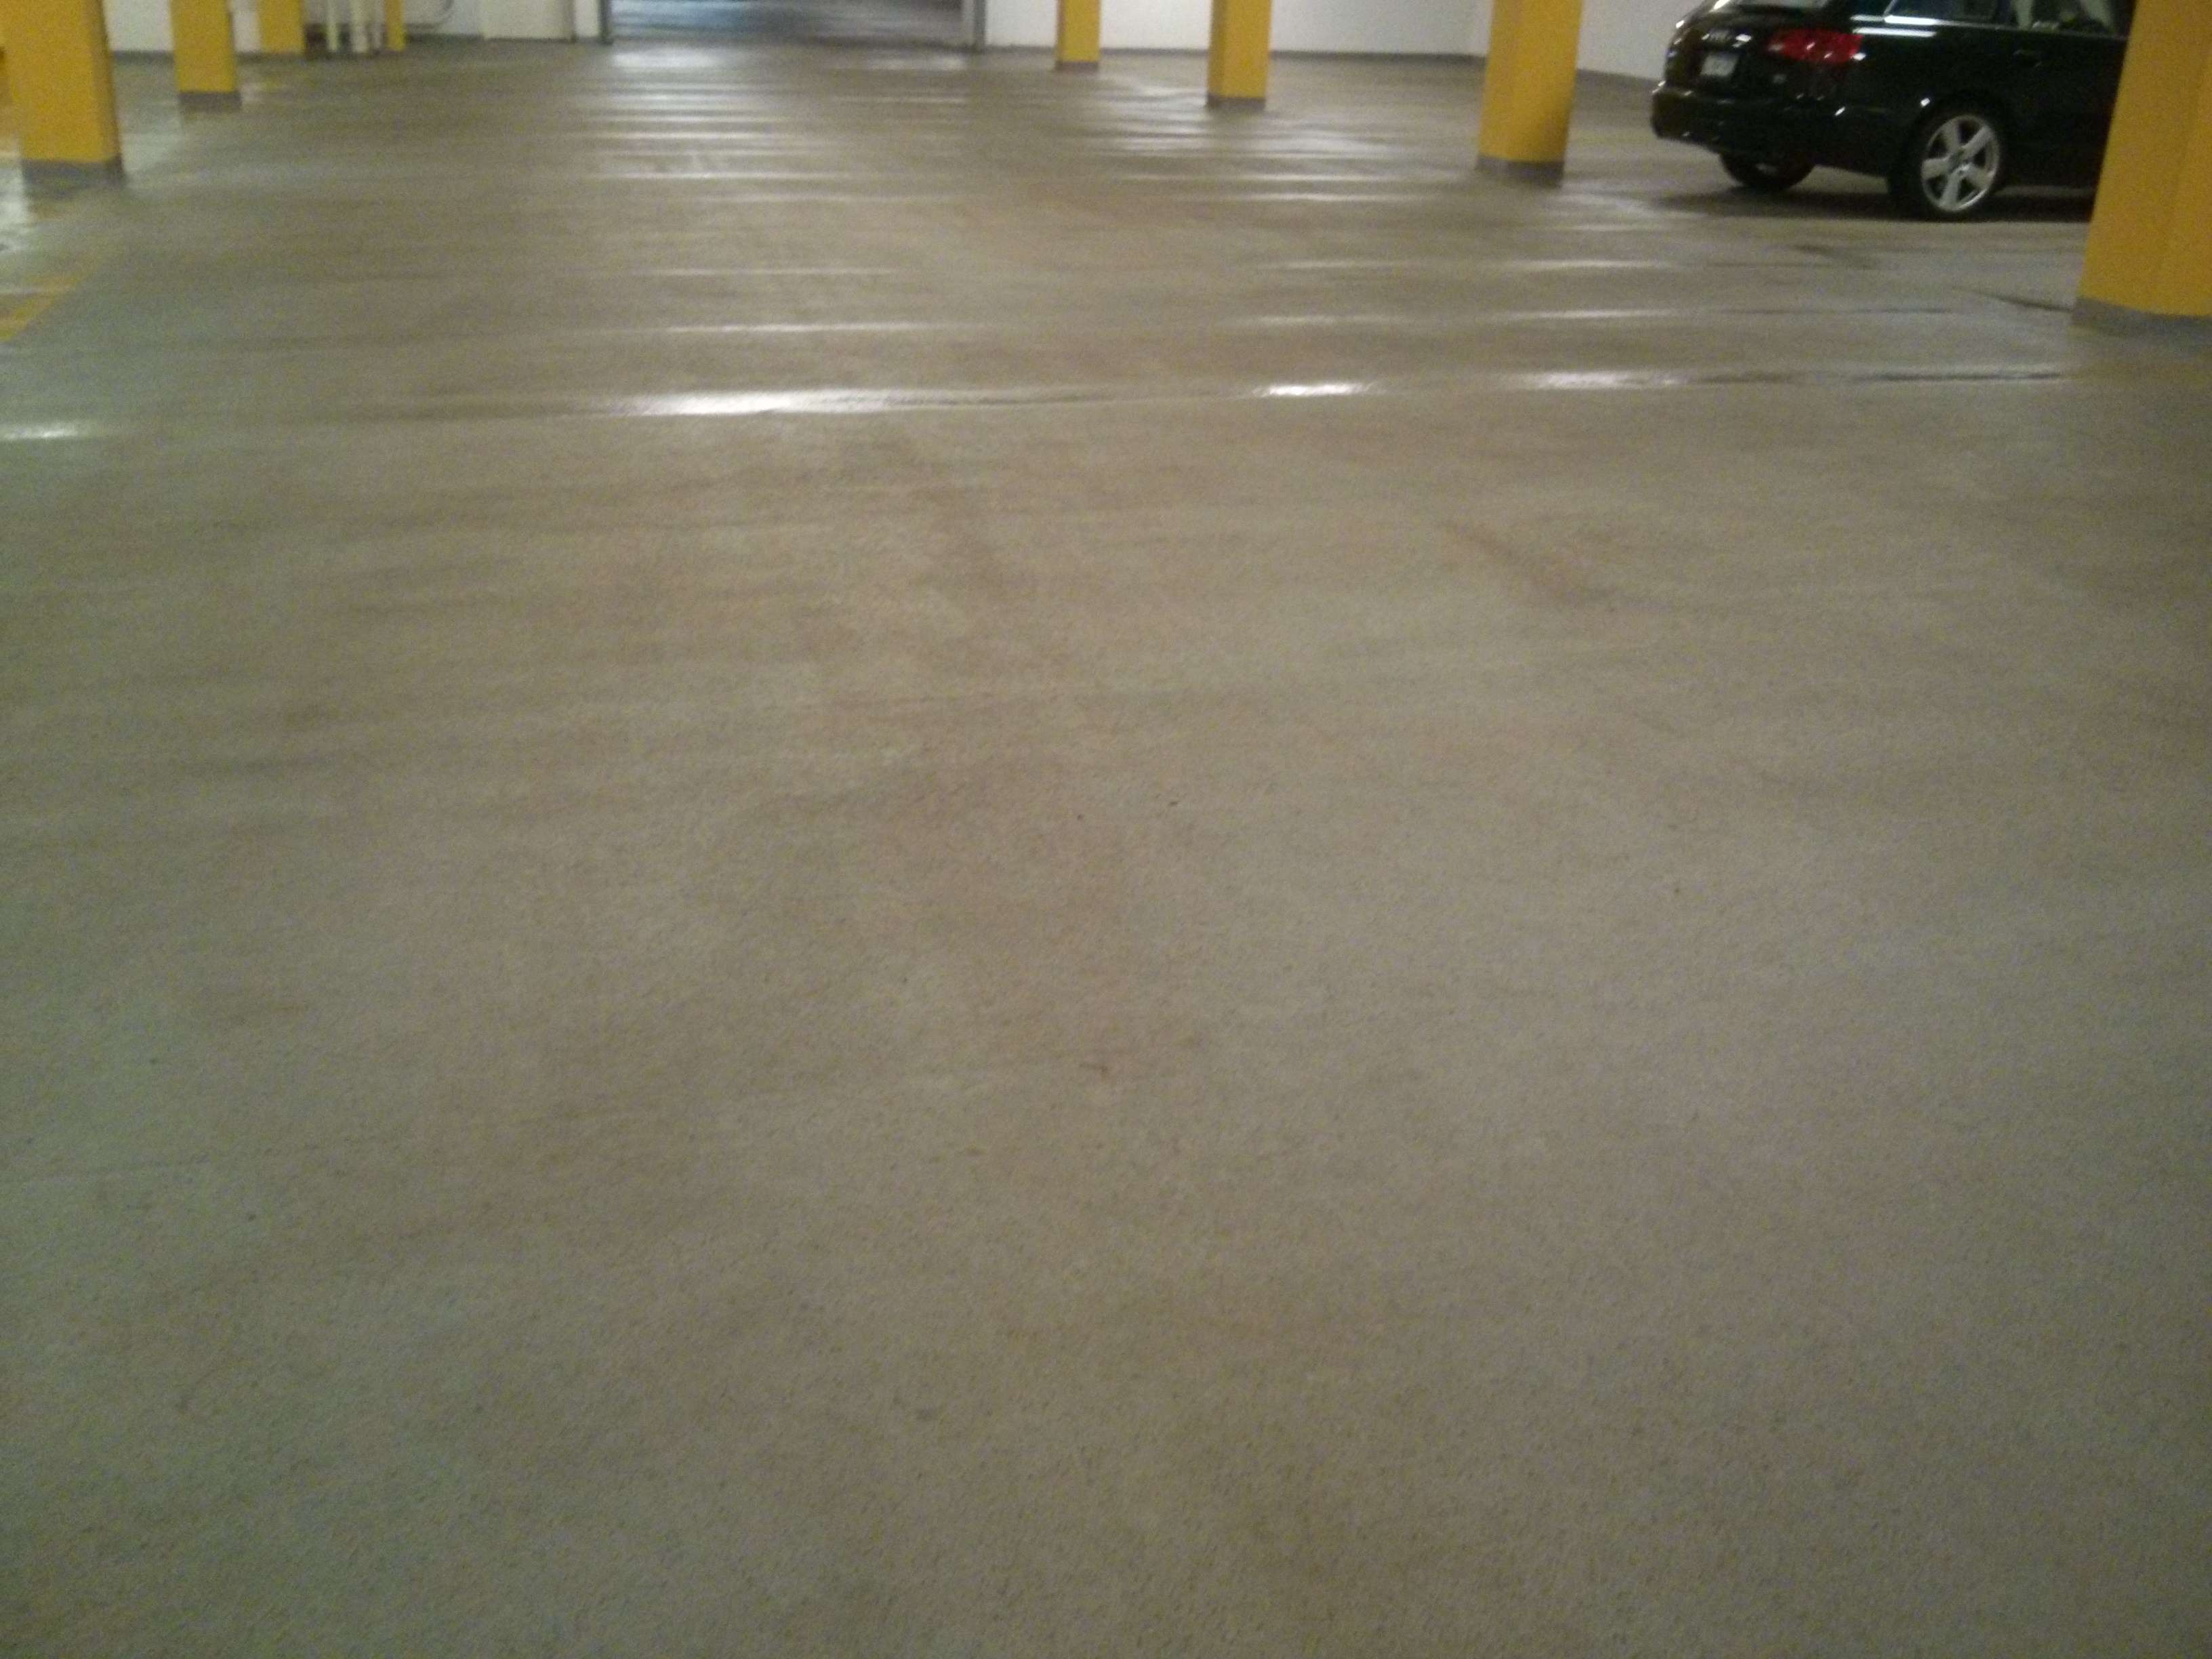 Parking garage floor scrubber ppi blog for Scrubbing concrete floors